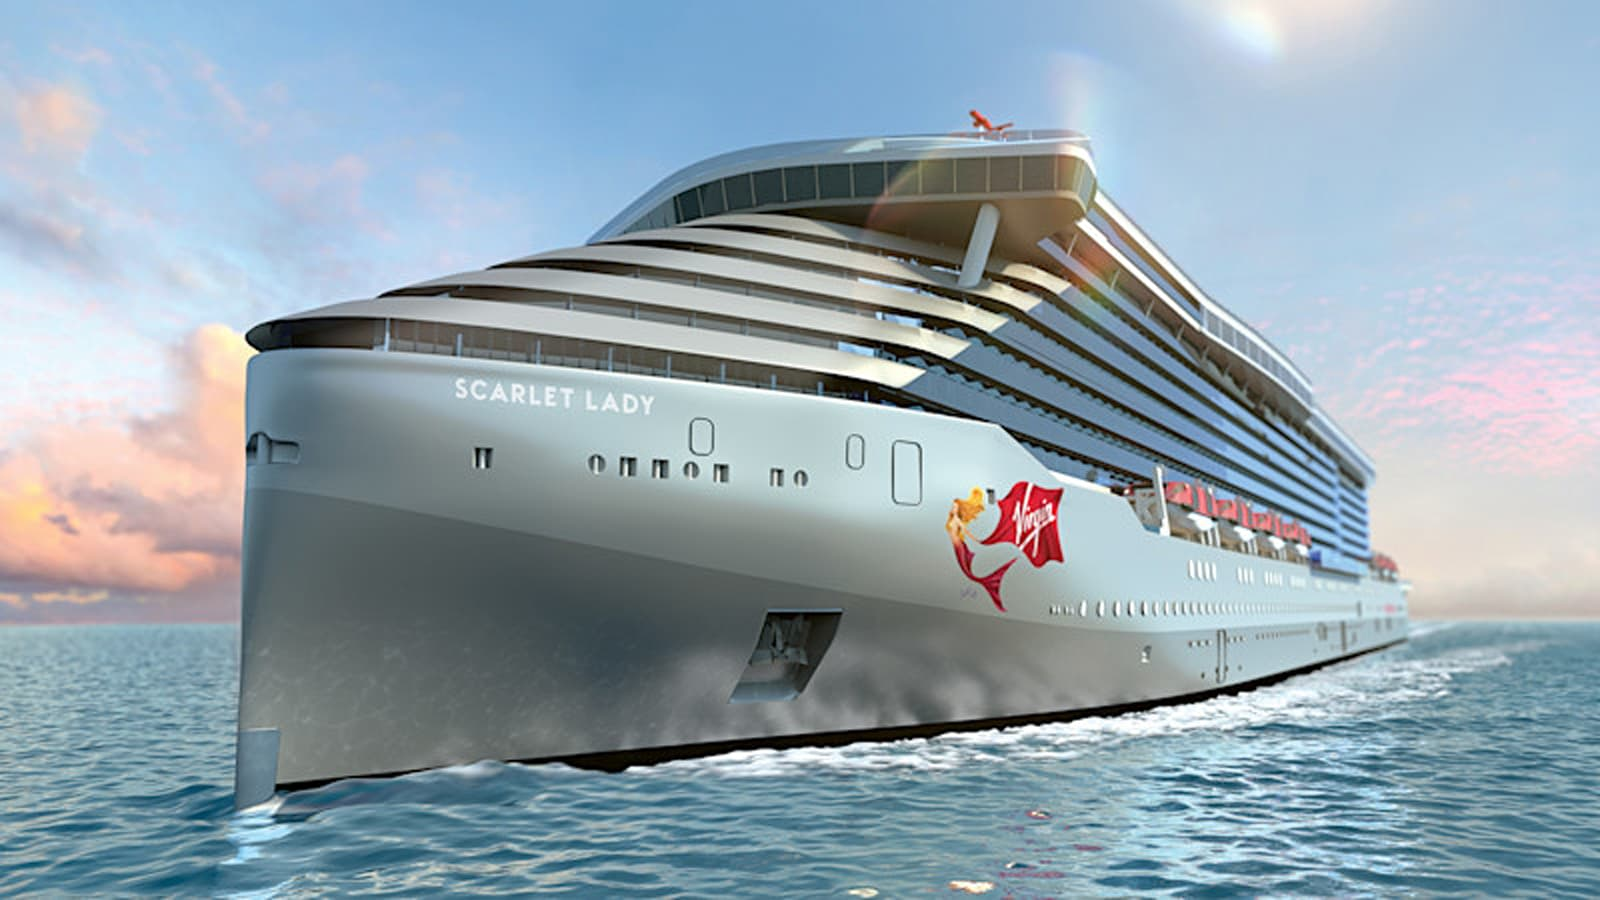 A render image of Virgin Voyages' ship Scarlet Lady